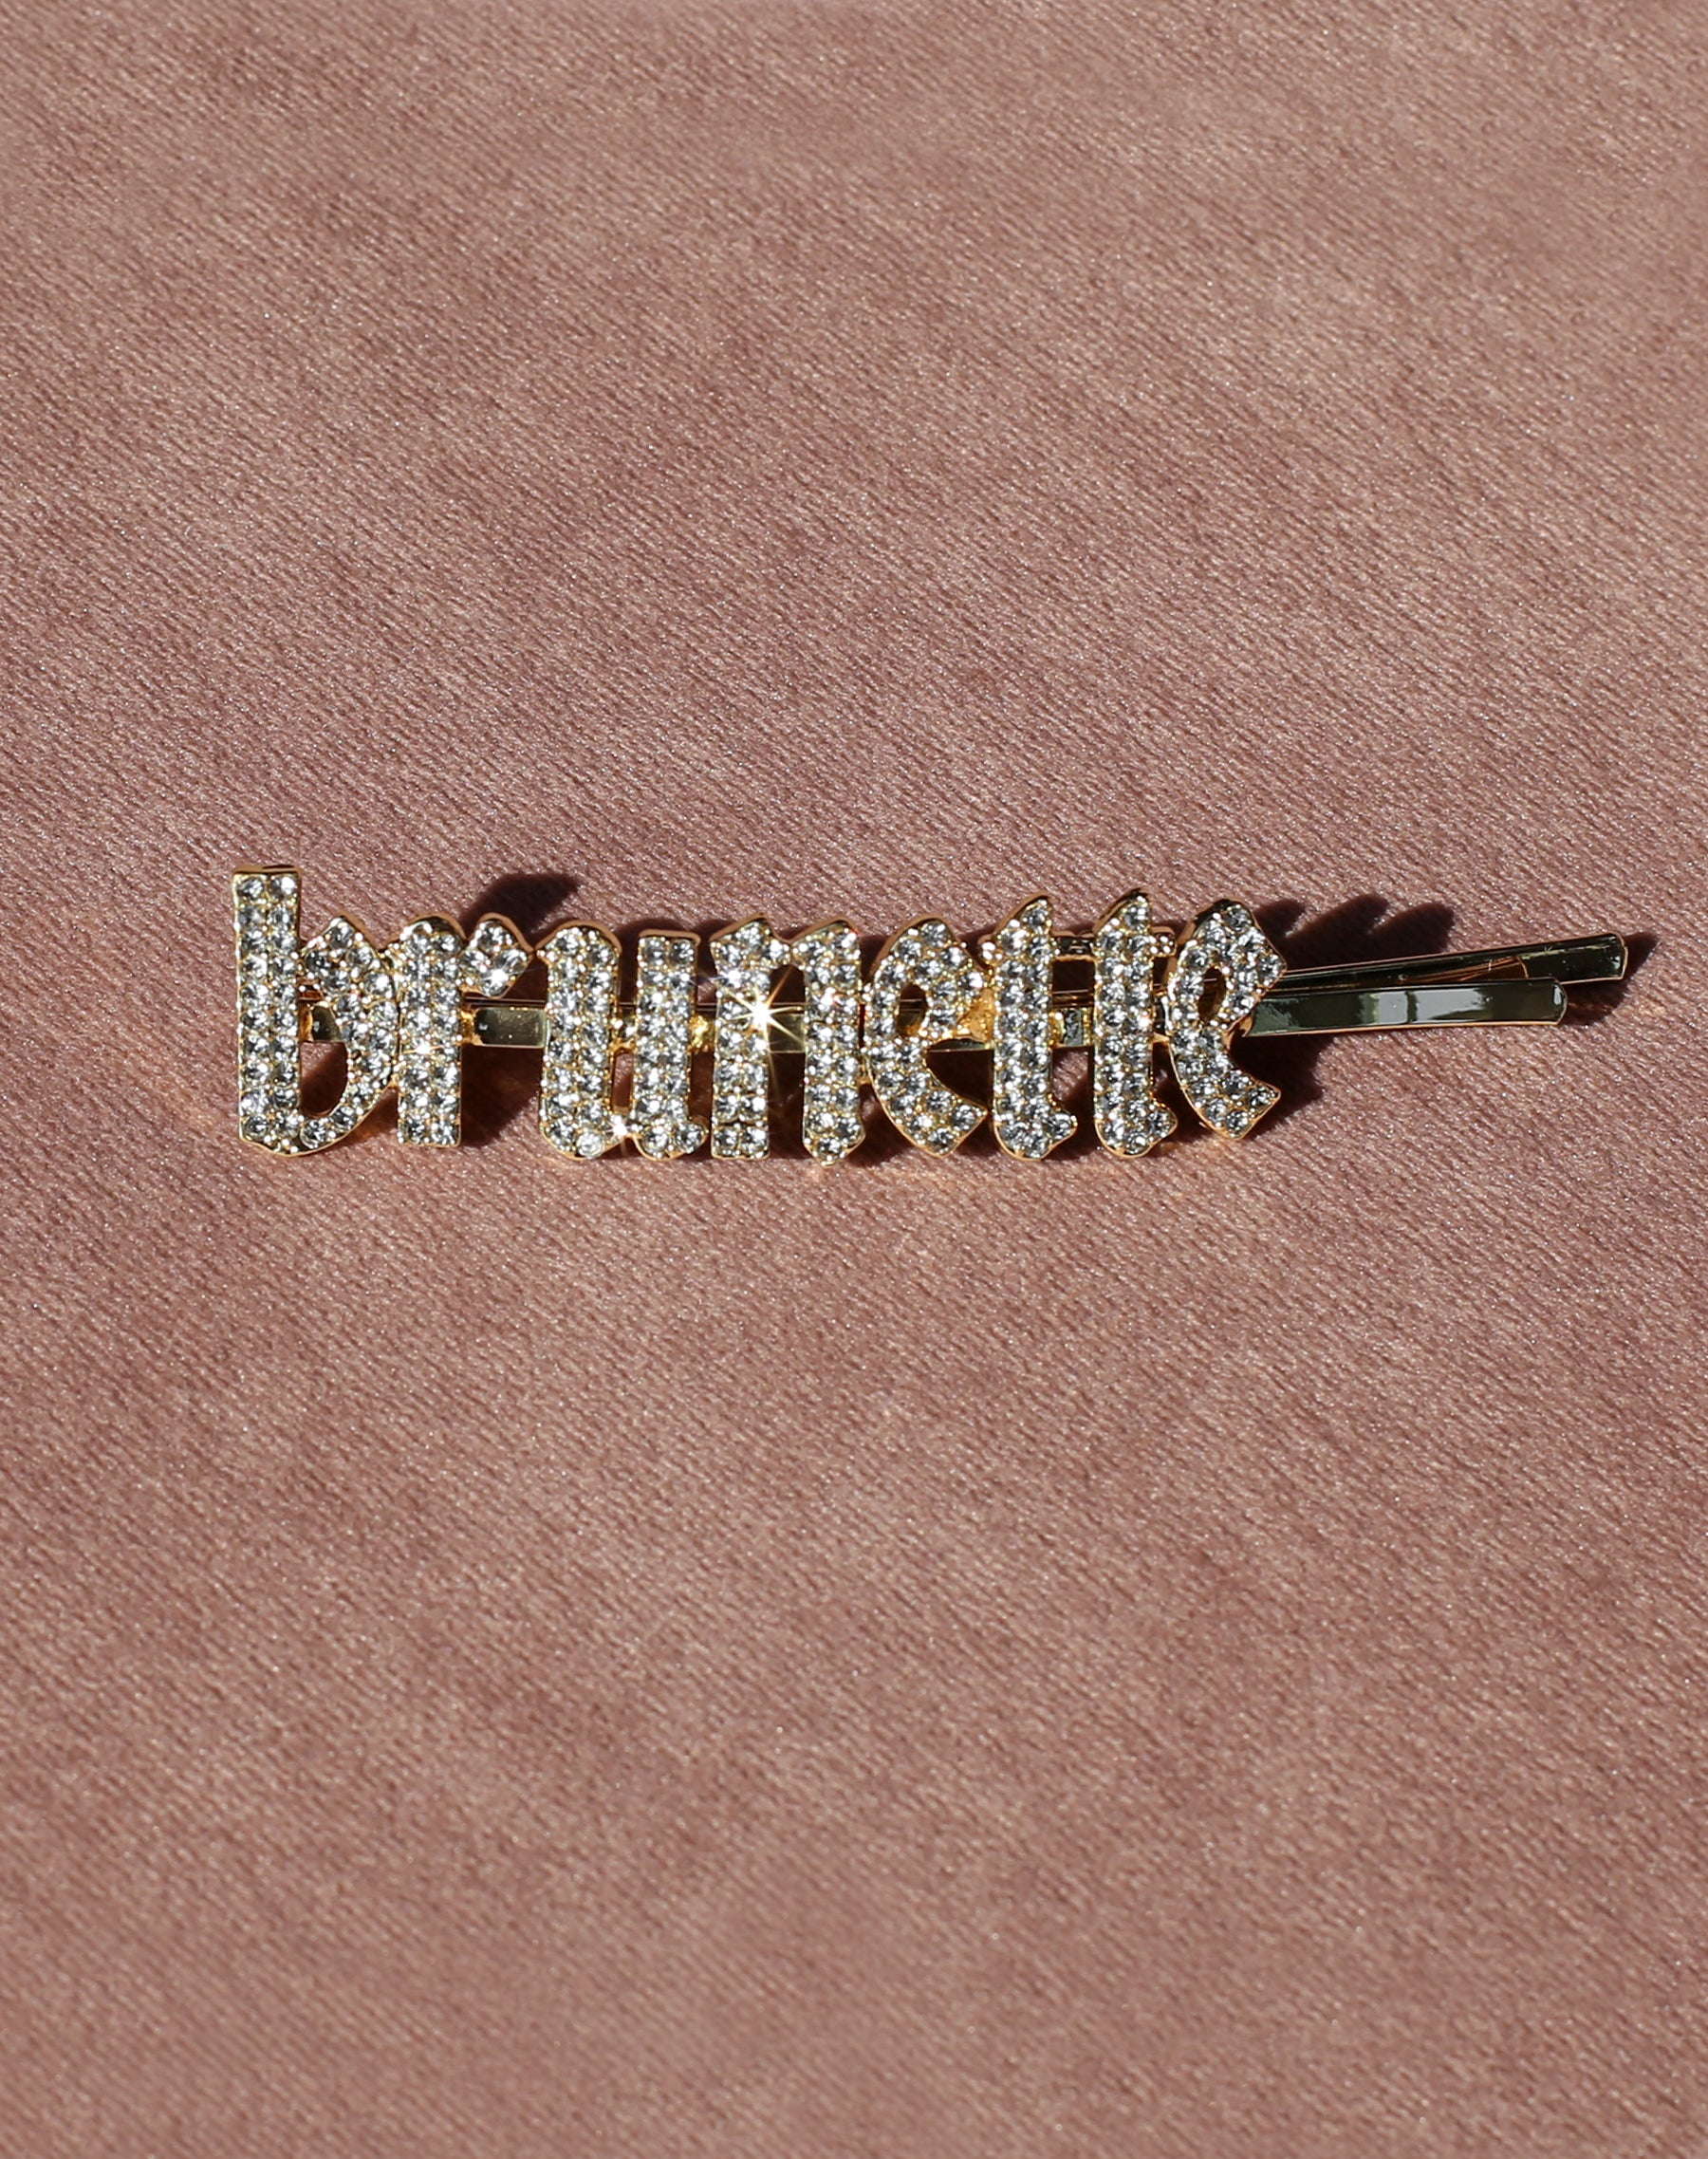 This is a photo of the Brunette Rhinestone Hair Clip in Gold by Brunette the Label.